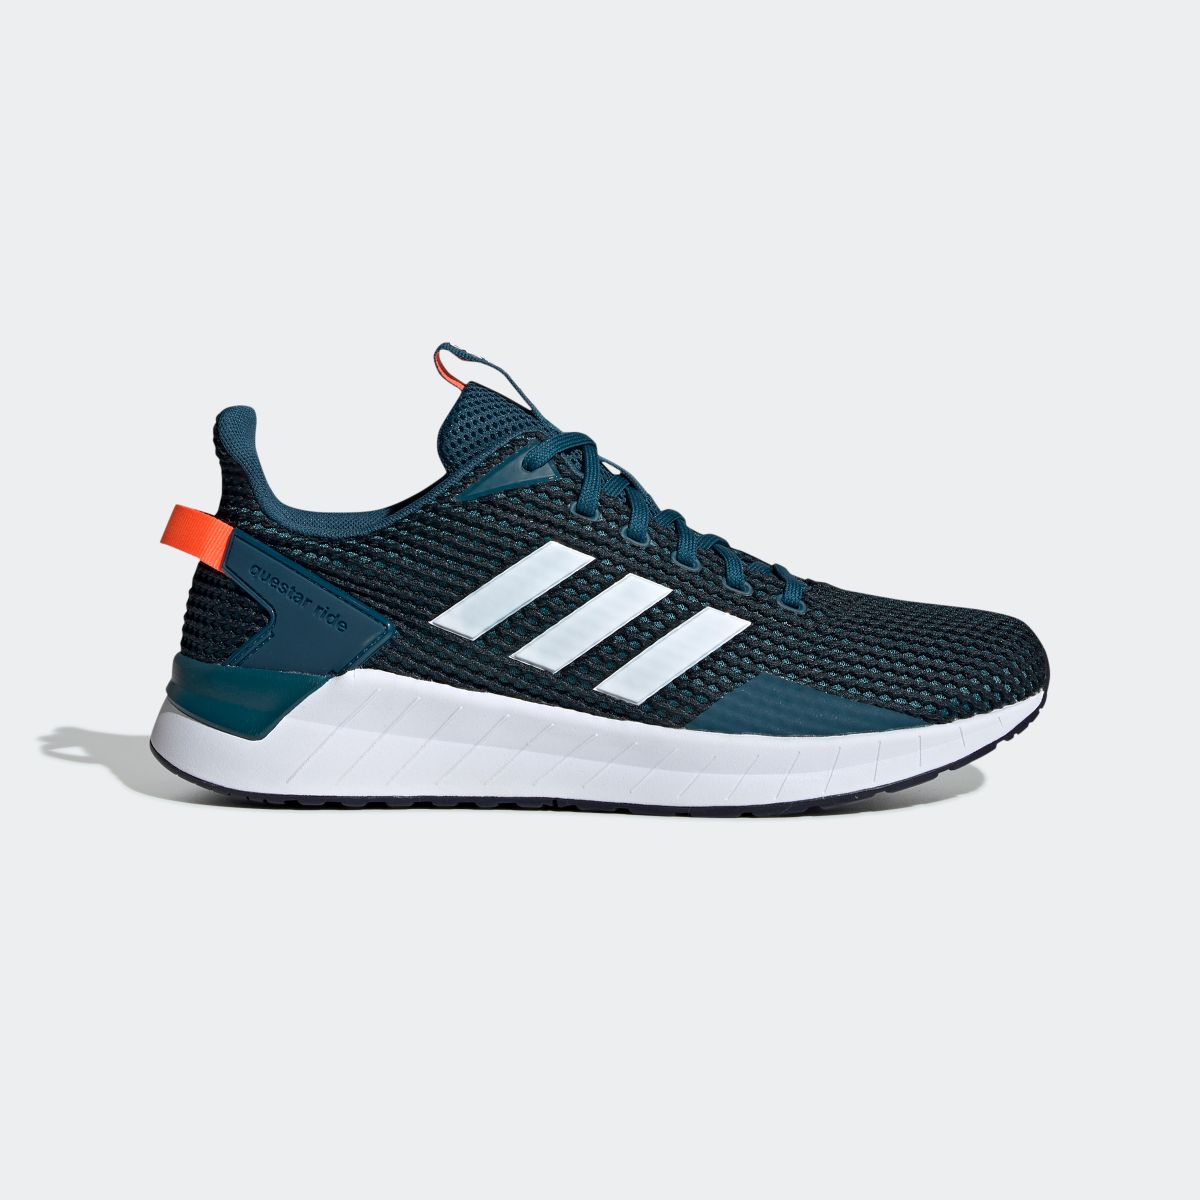 US $141.4 30% OFF|Original New Arrival 2019 Adidas Pure Men's Running Shoes Sneakers in Running Shoes from Sports & Entertainment on AliExpress